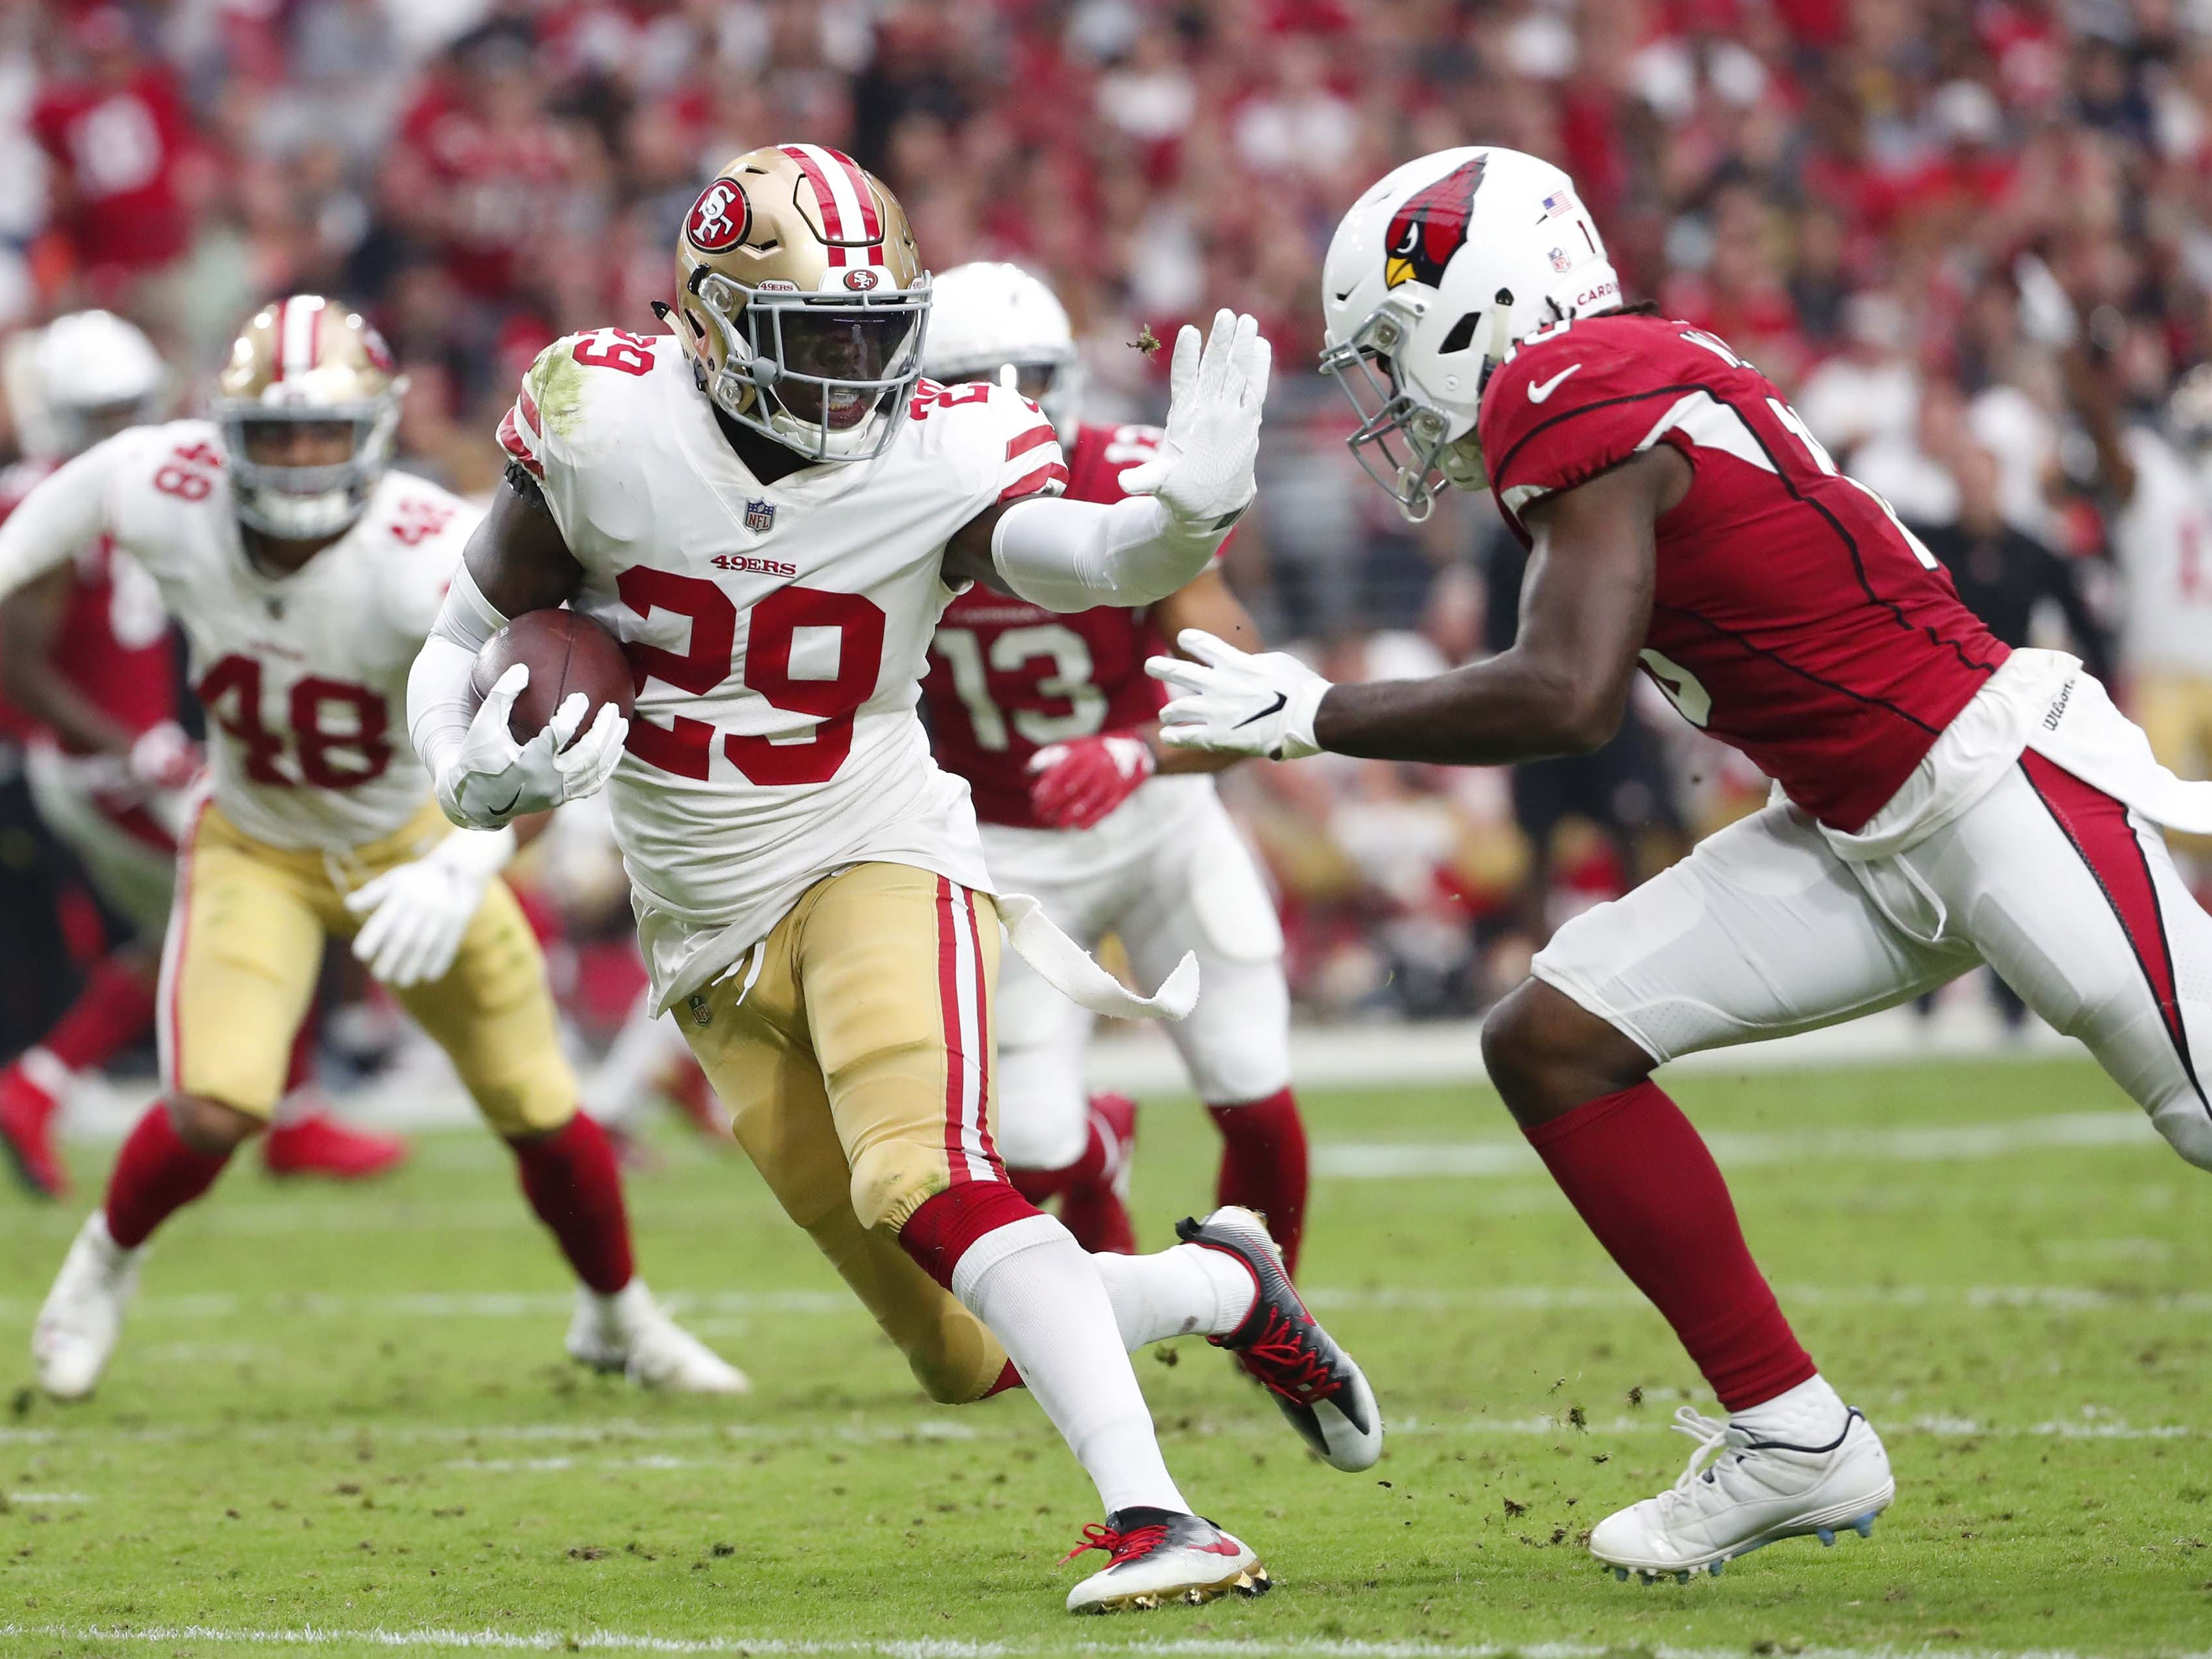 San Francisco 49ers strong safety Jaquiski Tartt (29) returns an interception against Arizona Cardinals wide receiver Chad Williams (10) In the second quarter during NFL action against the San Francisco 49ers on Oct. 28 at State Farm Stadium.